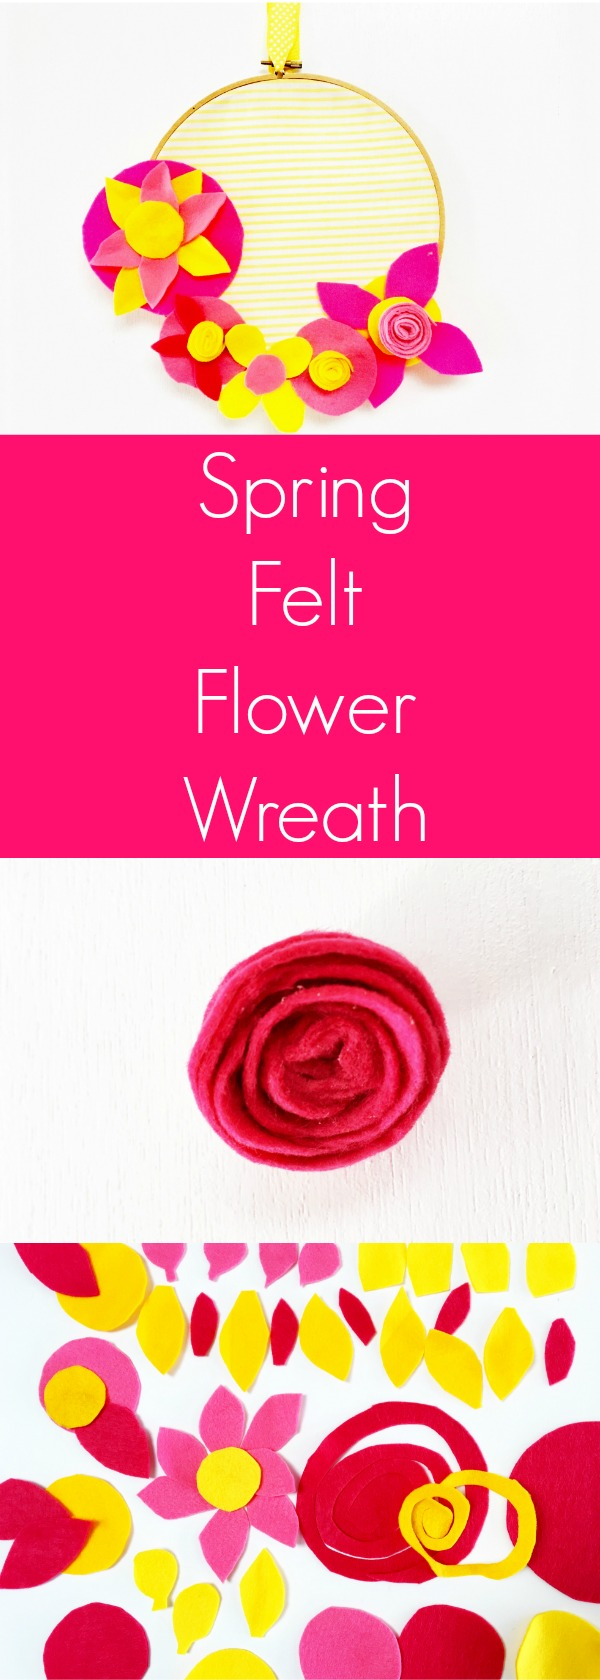 SPRING FELT FLOWER WREATH Use felt to create a simple Spring wreath filled with felt flowers. Read for how to adapt this project into a kid-friendly craft.